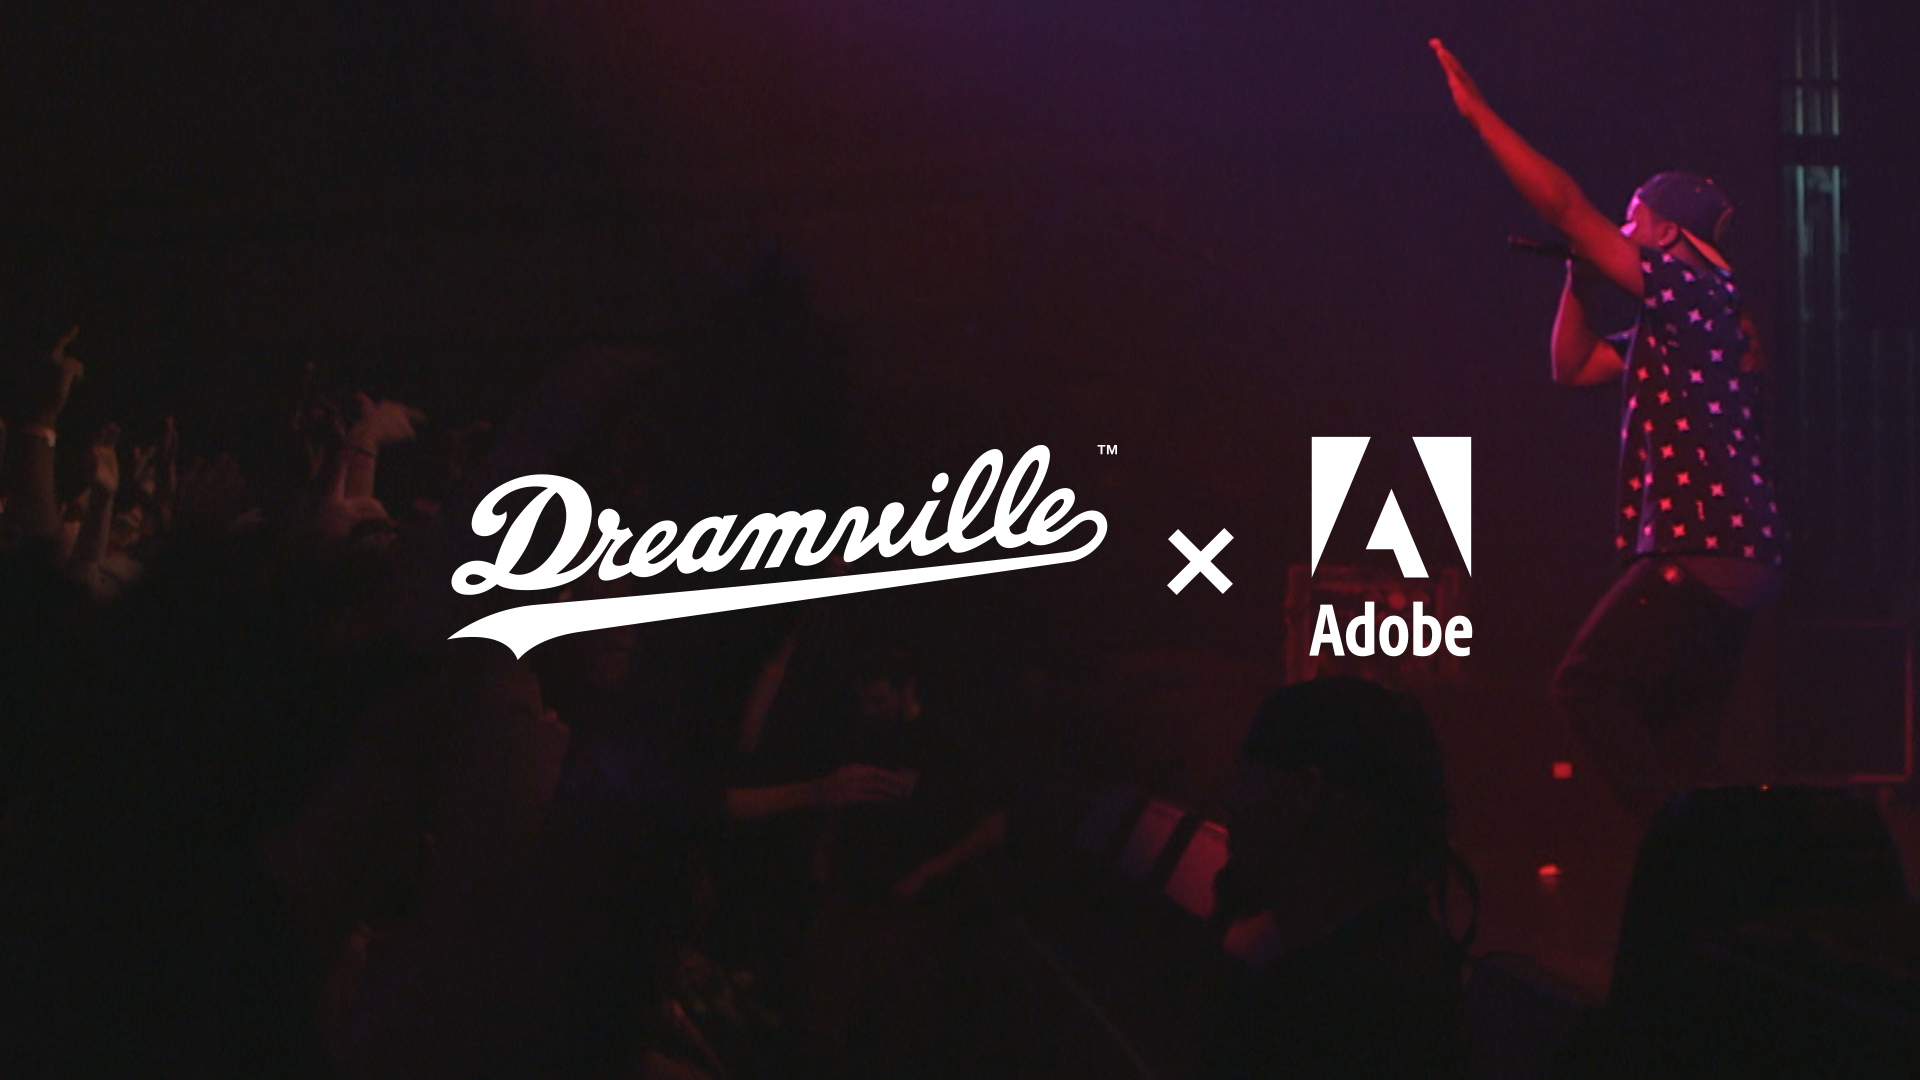 dreamville x adobe behind the forest hills drive tour